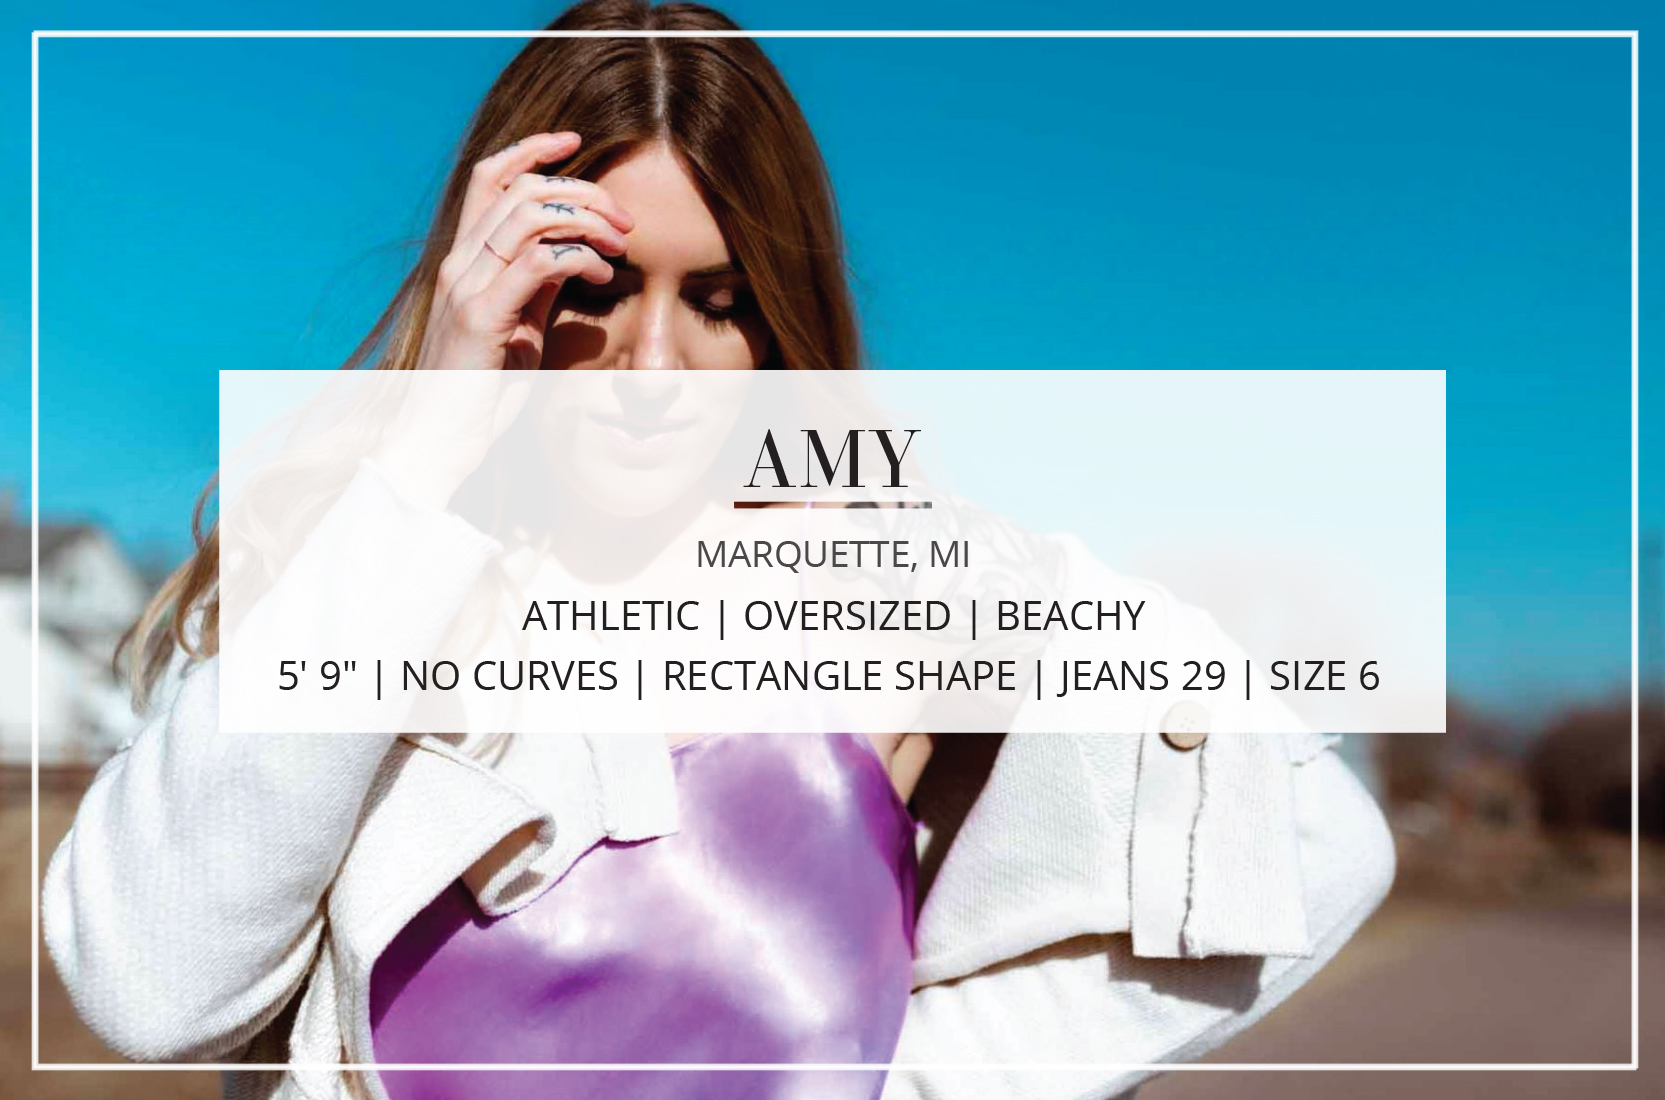 A photographer & style influencer at The Mom Edit, Amy's obsessed with all things beachy, oversized + athleisure. She's also a new mama & a tall gal.